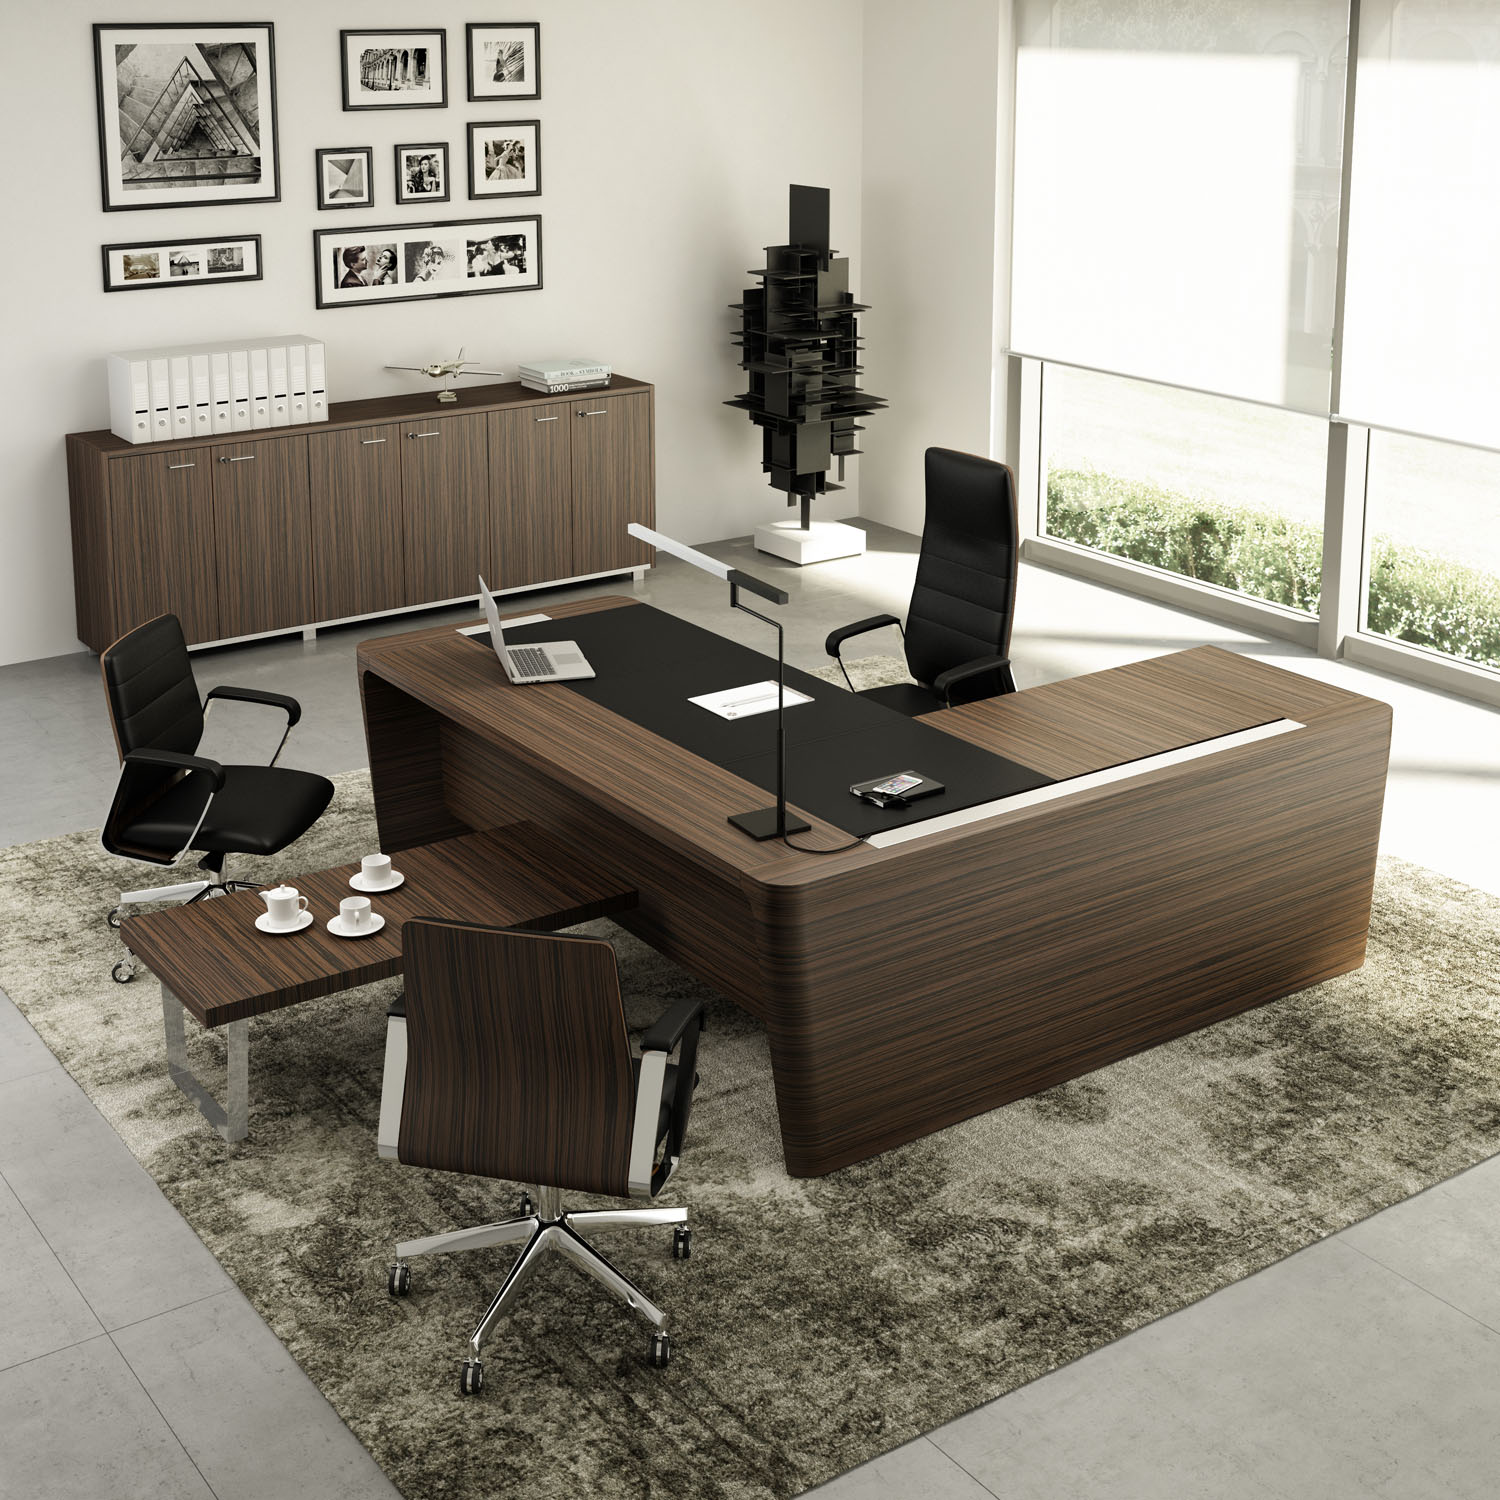 A powerful, modern office desk that's a little messy shows that you're a bold creative and visionary thinker.